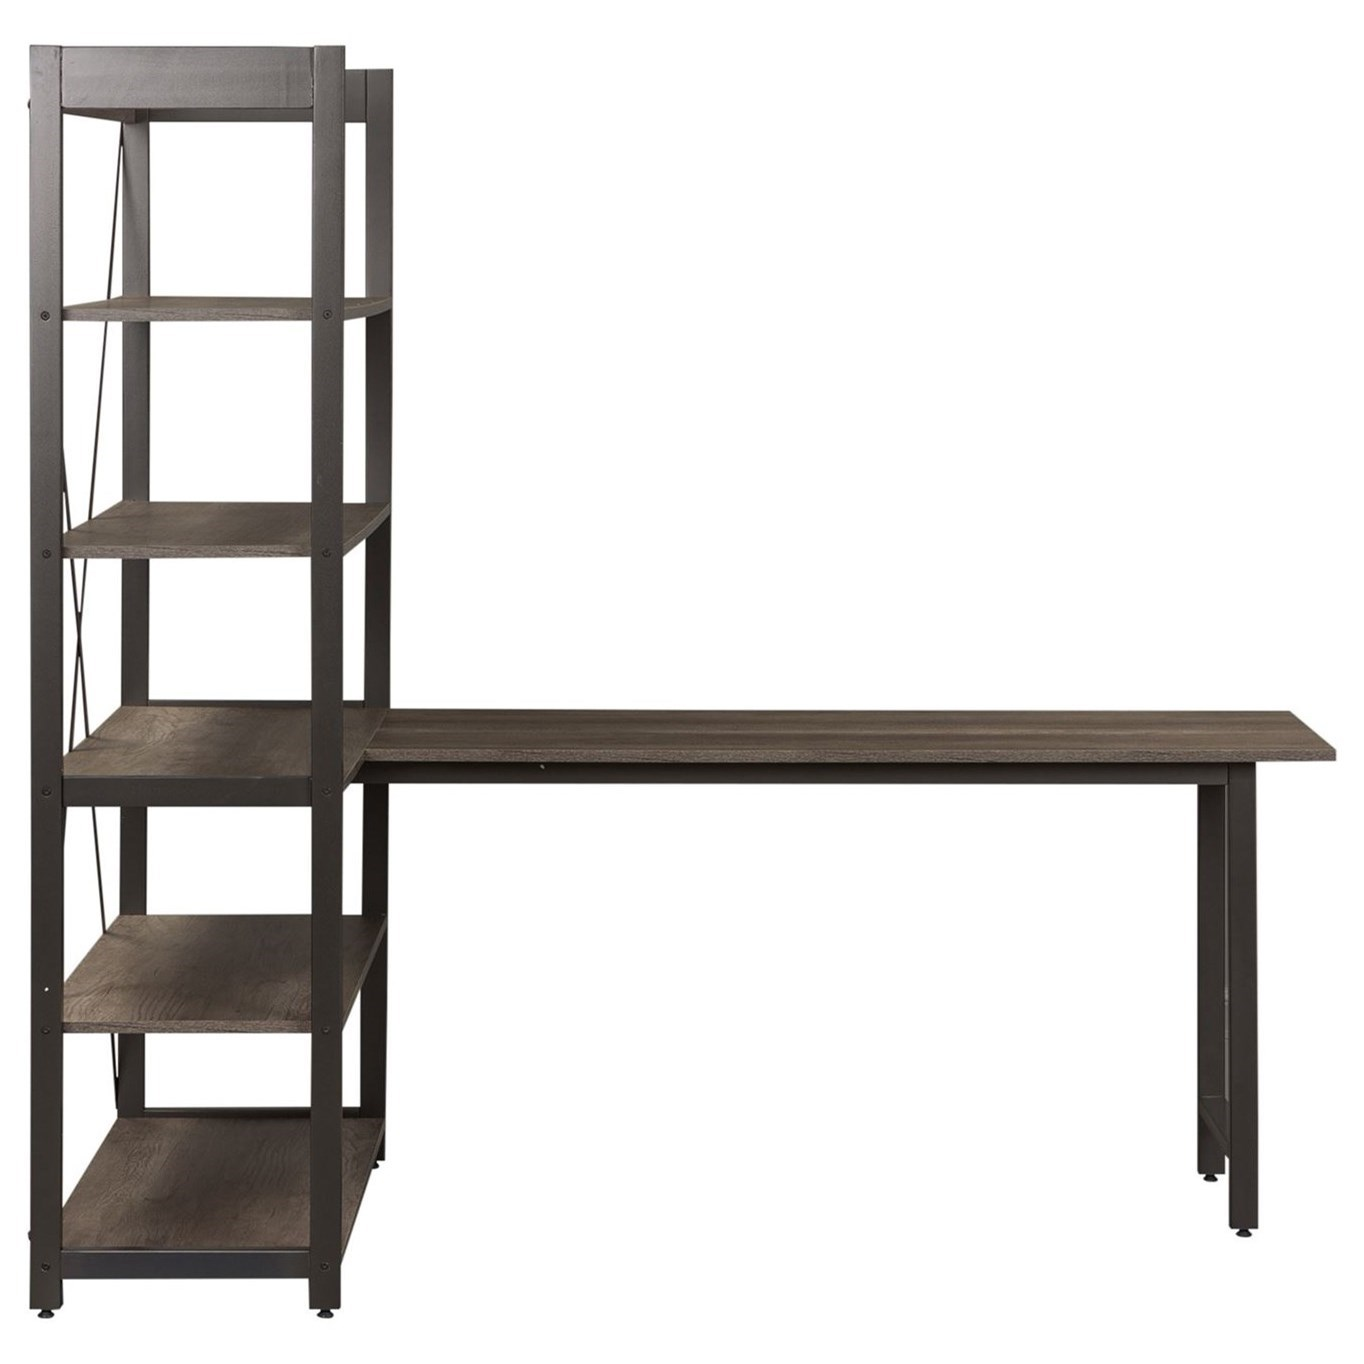 Tanners Creek Desk and Bookcase Set by Liberty Furniture at Stoney Creek Furniture